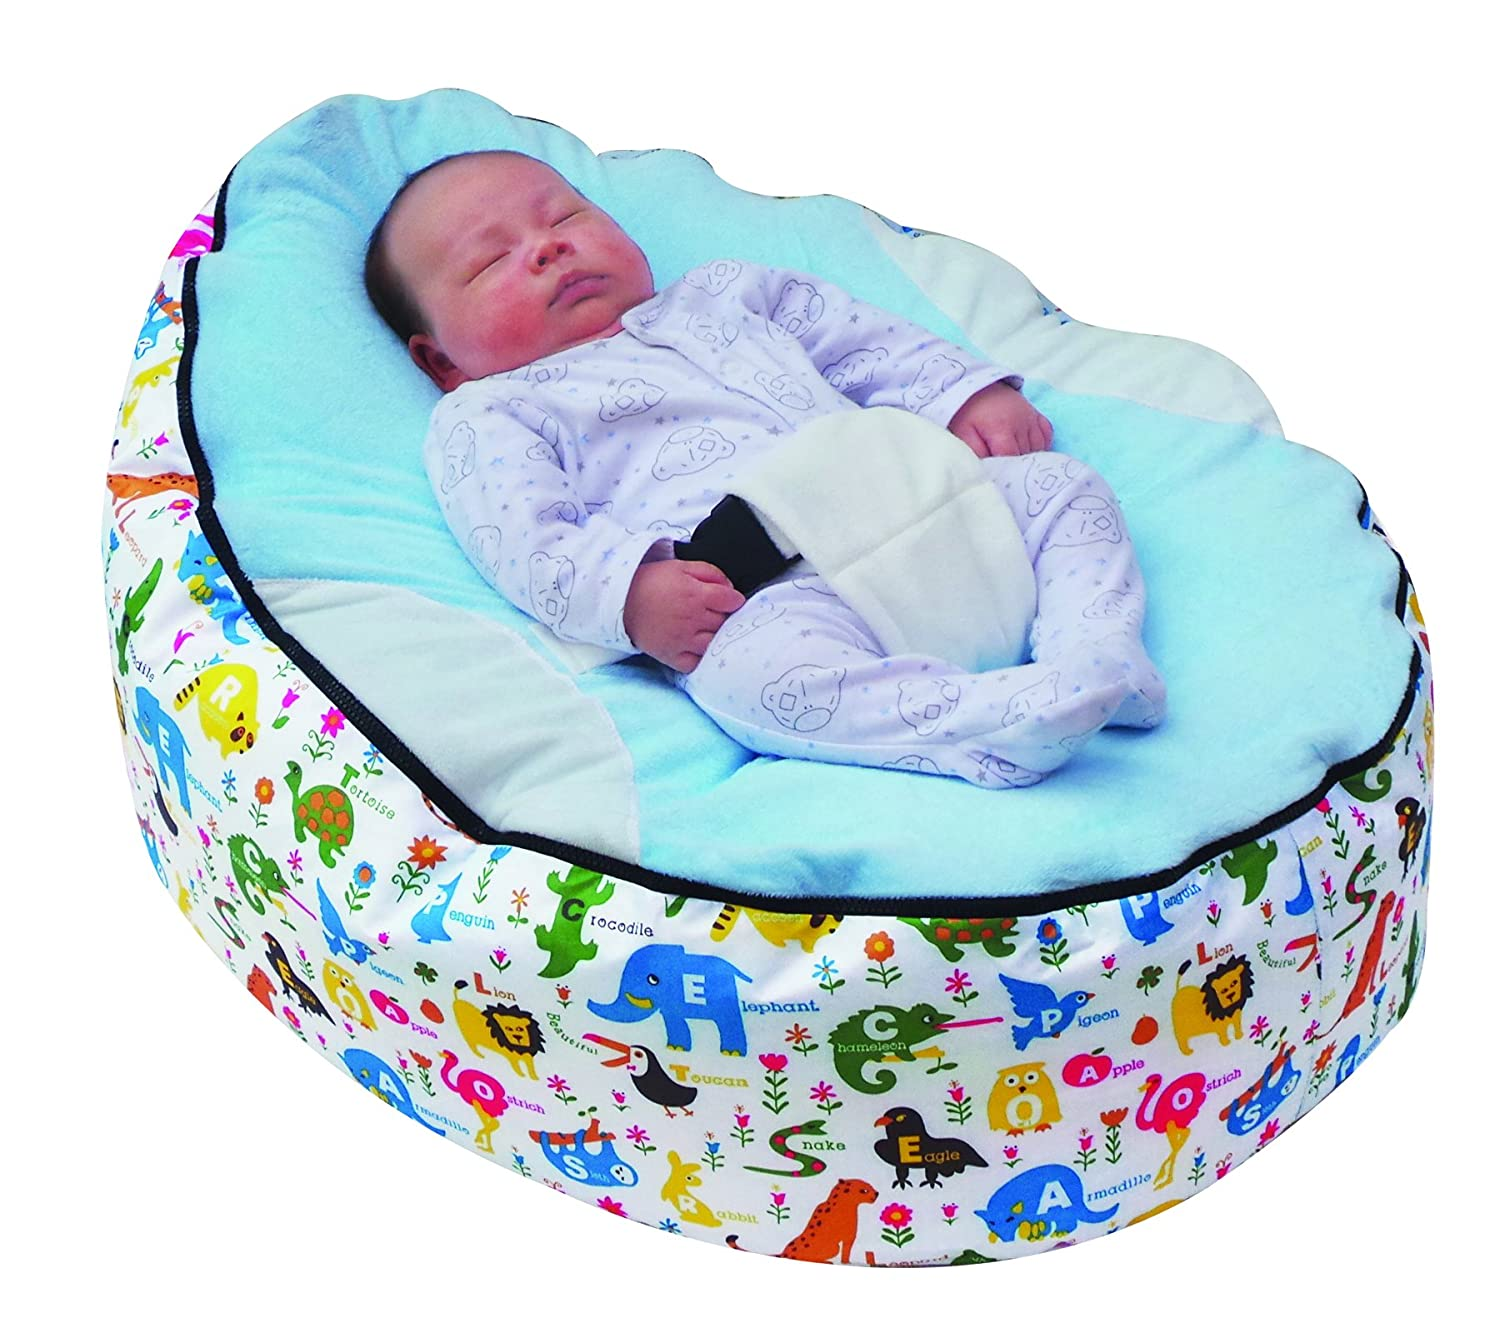 BABY BEAN BAG WITH ADJUSTABLE SAFETY HARNESS & 2 COVERS Mama Baba